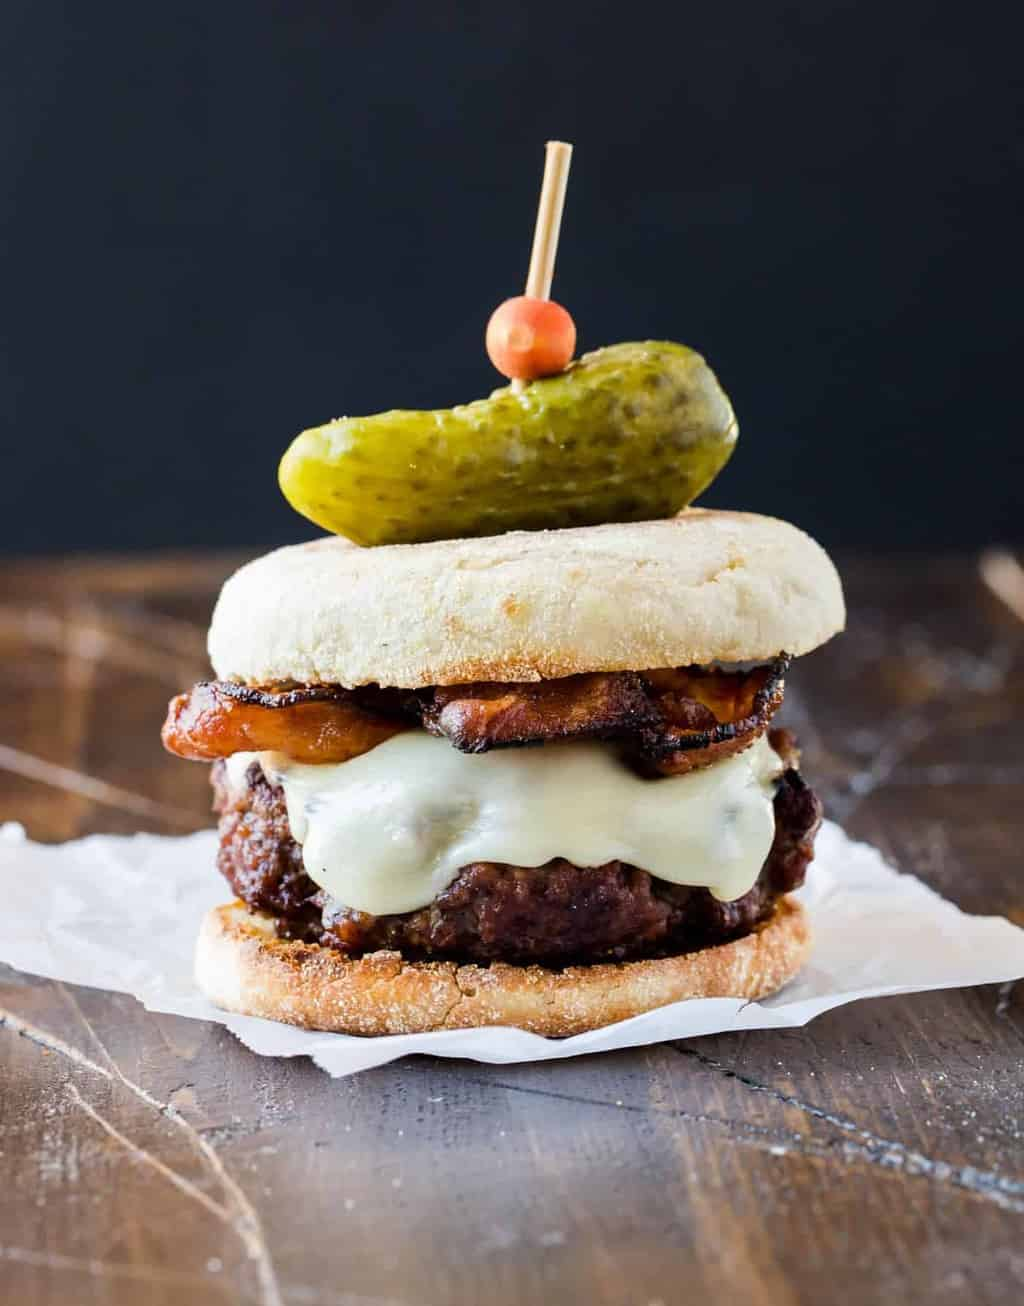 One Guinness Burger with Irish Cheddar and Bacon topped with a mini gherkin pickle and a toothpick skewering the burger.